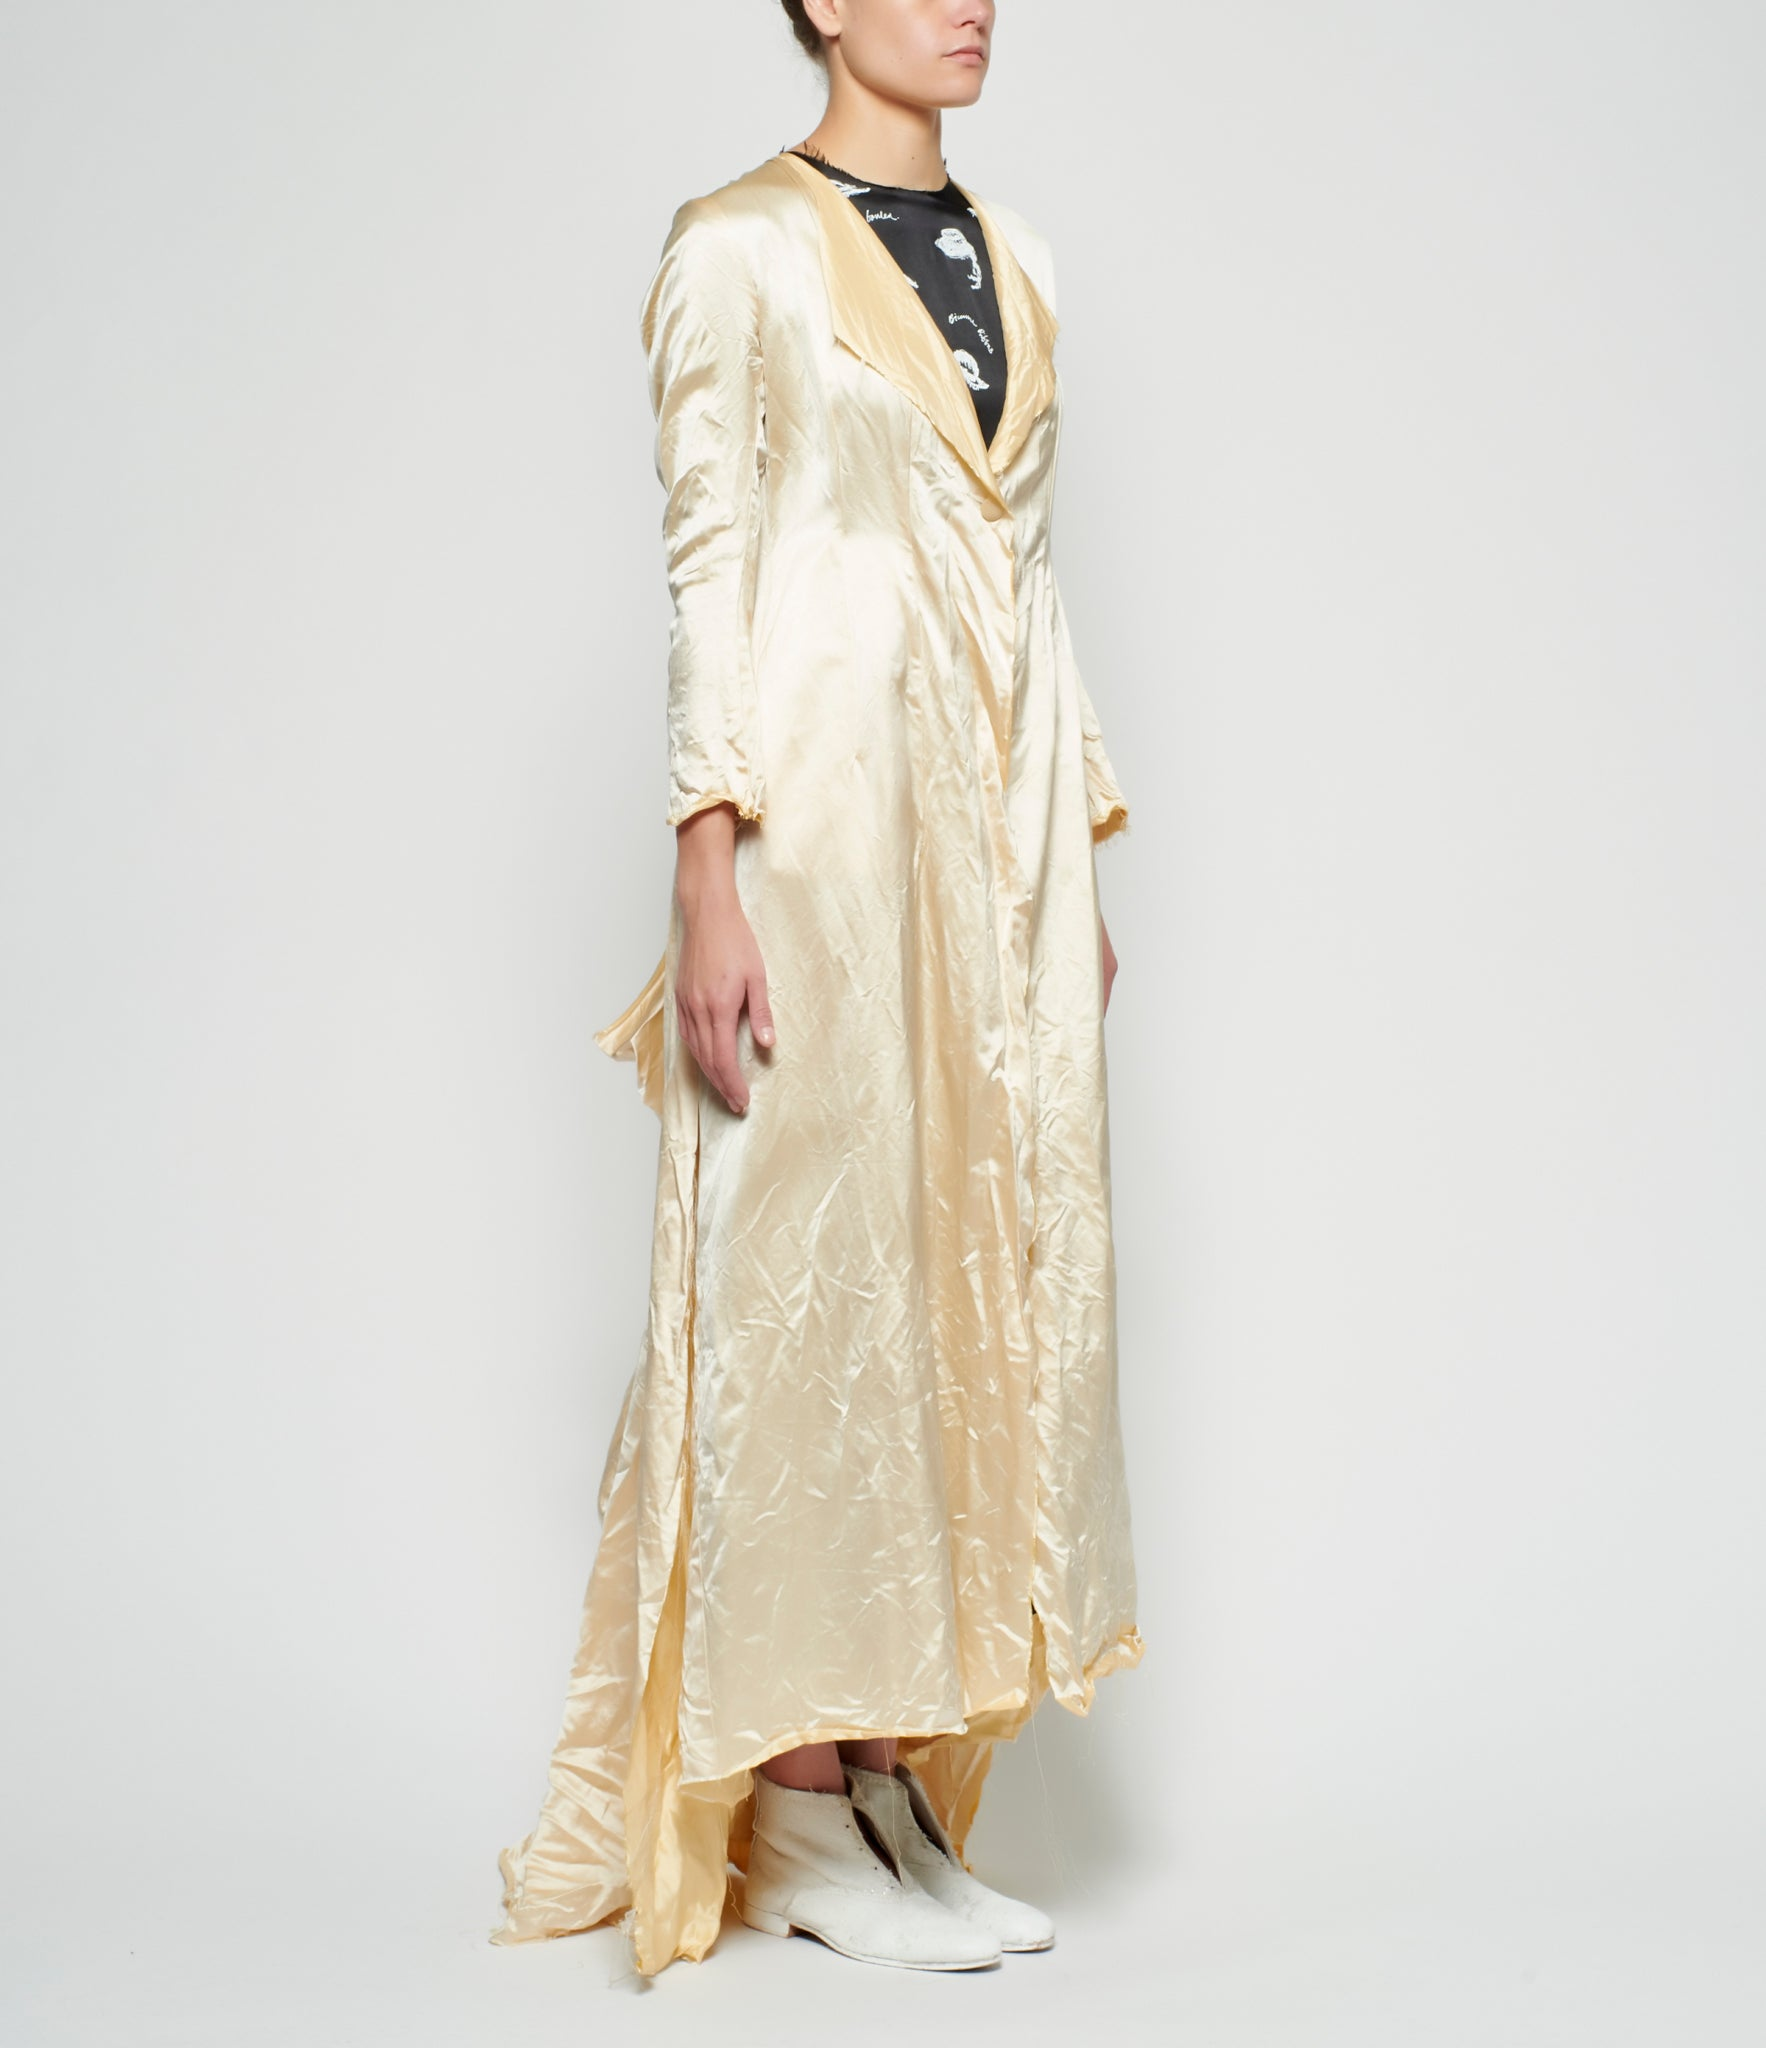 Elena Dawson Antique Heavy Silk Satin Dress Coat